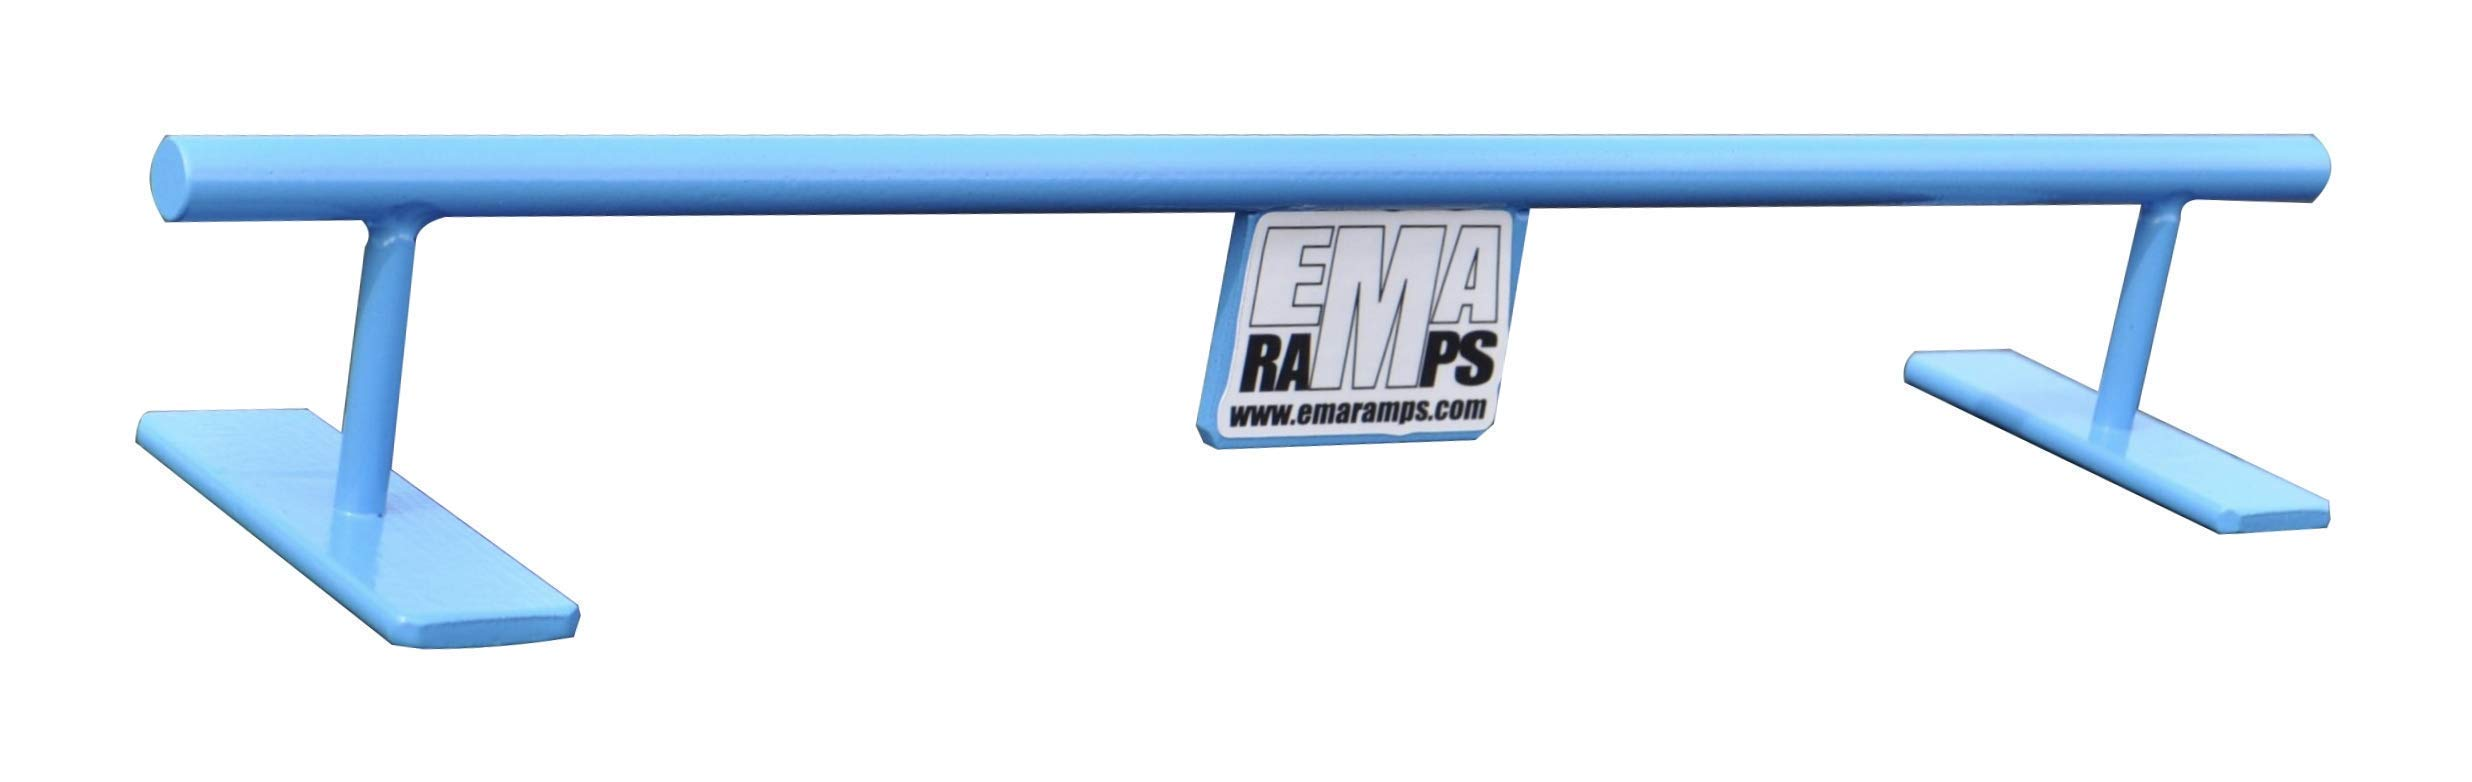 EMA Ramps Fingerboard Accessory Rail Made from Steel to be Used with Fingerboard Decks Great for Fingerboard Parks 1 1/2'' High Round Rail